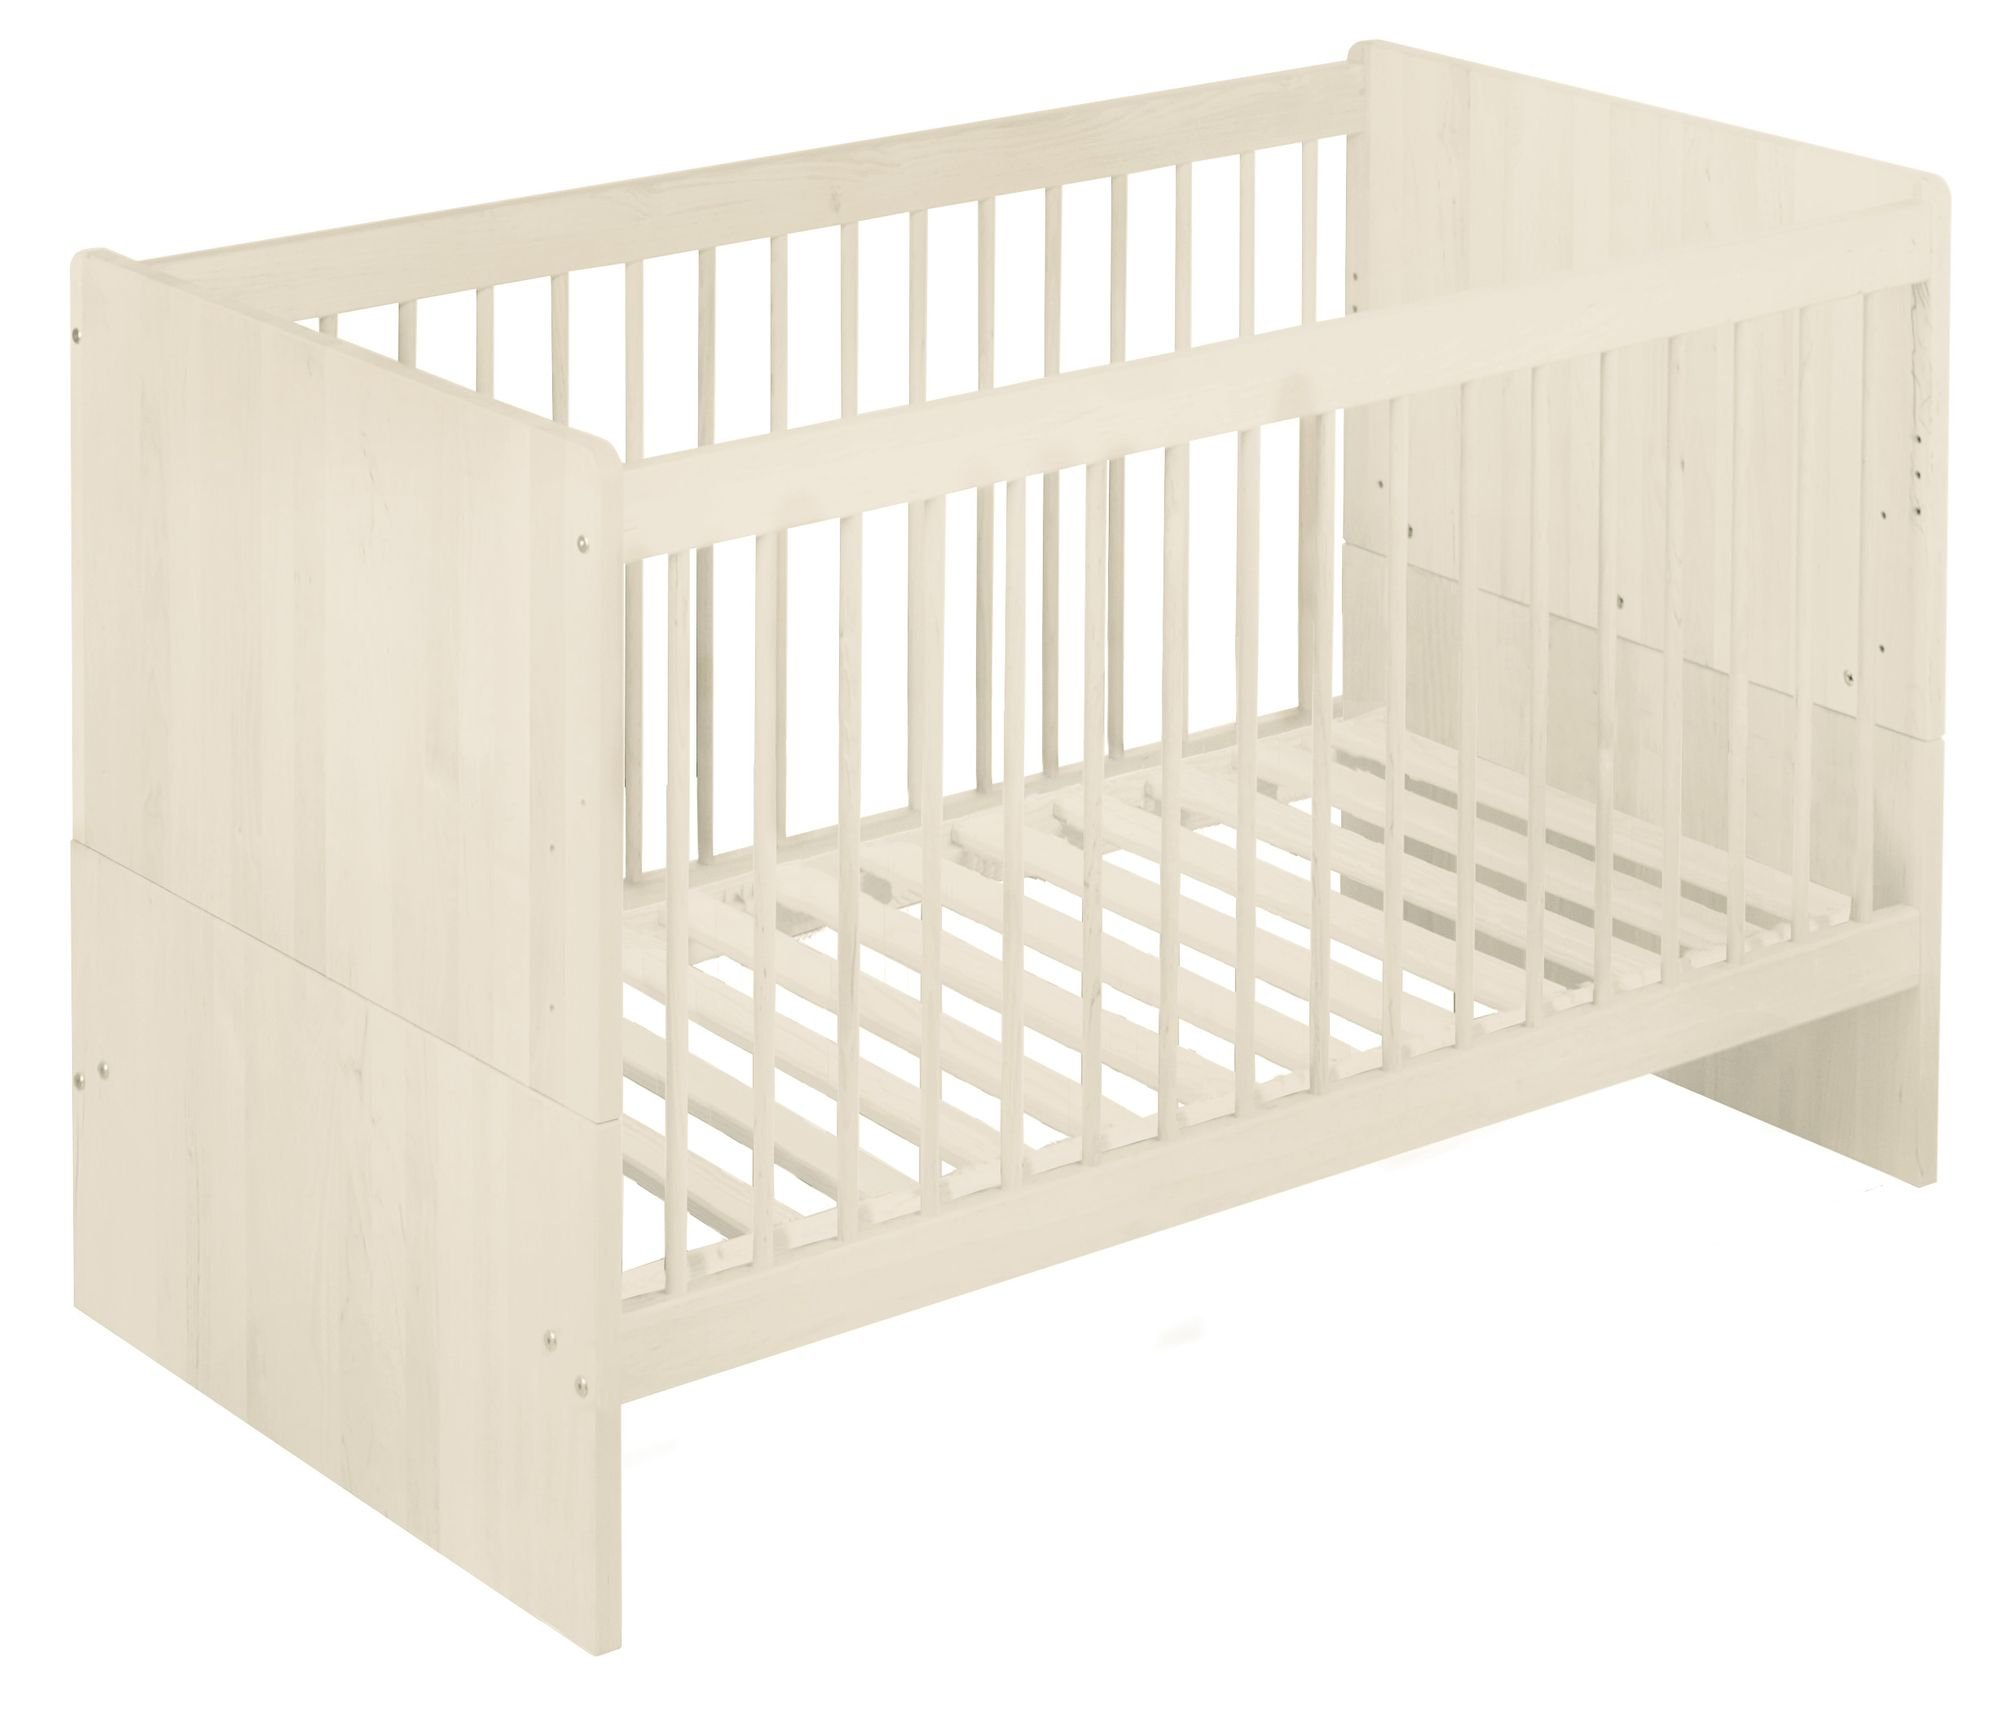 BioKinder 22600 Lina babybed cot 70x140 cm. Biological massive wood Bio-Kinder Babybed cot Lina Sustainable solid wood. Biological finish. Individually handcrafted by professional carpenters Surface W 70 cm, L 140 cm. Outward measurement L 150 cm, W 77 cm, H 90 cm. 1